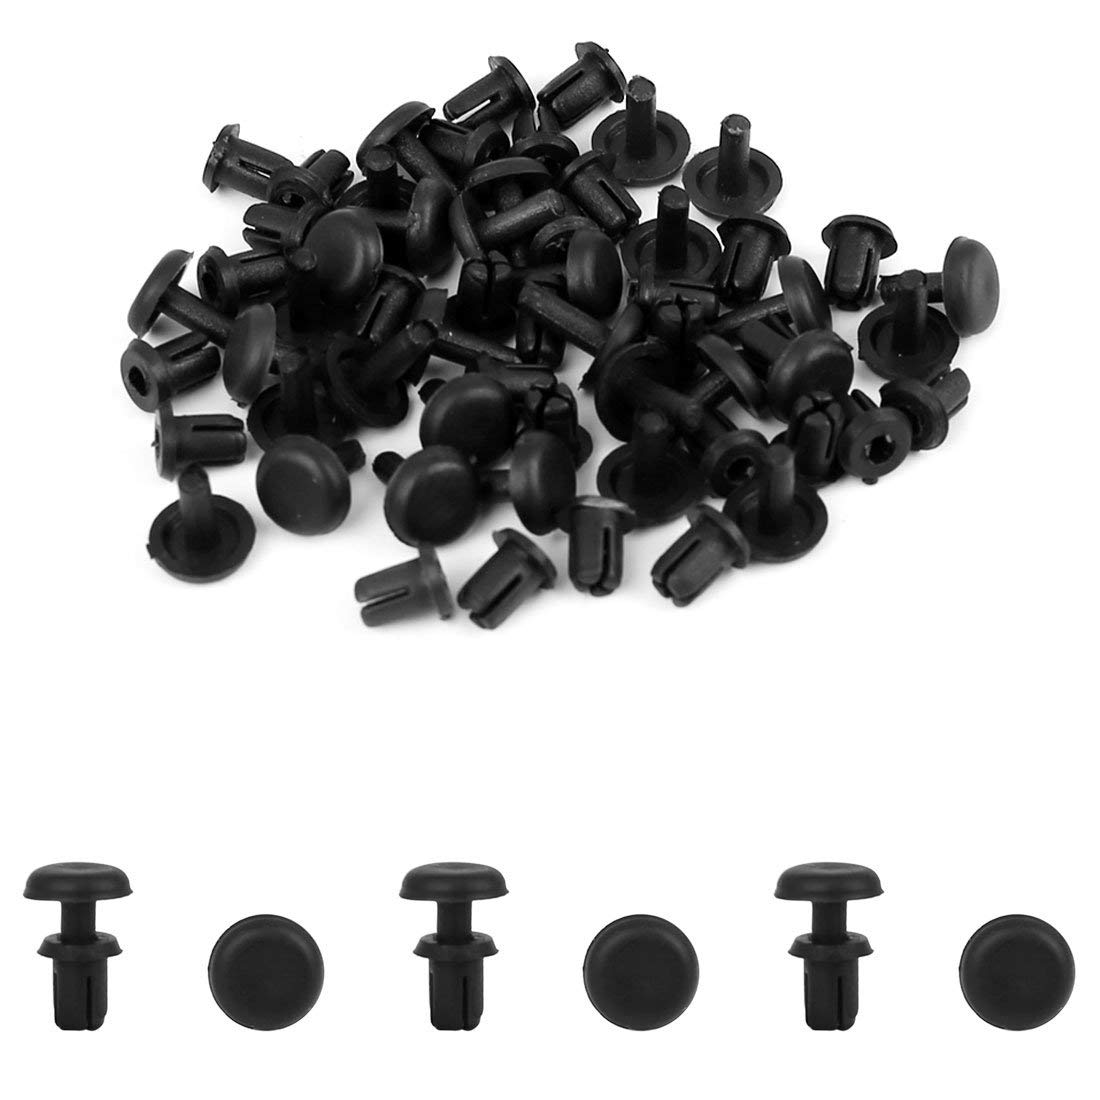 Image 2 - uxcell 30Pcs 4mm Black Plastic Rivets Push Type Panel Retainer Fastener Clip for Car-in Auto Fastener & Clip from Automobiles & Motorcycles